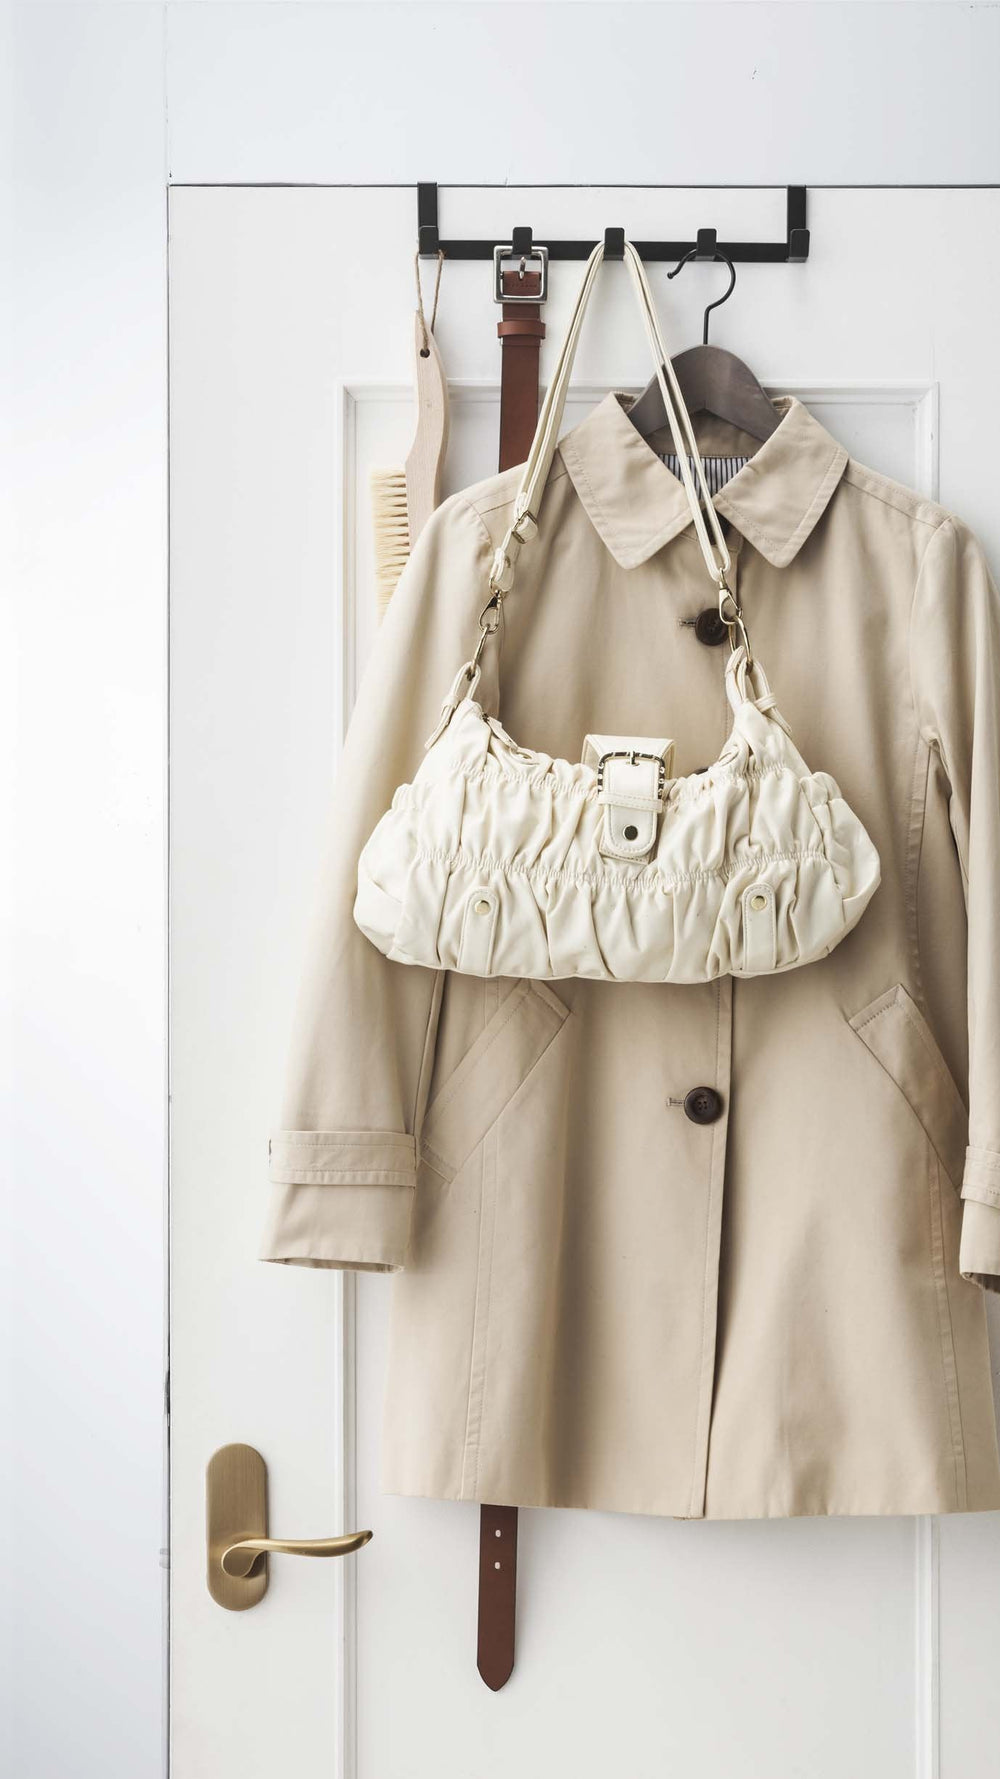 Yamazaki's wide over-door hook with five hooks hanging on a door and holding handbag and coat.